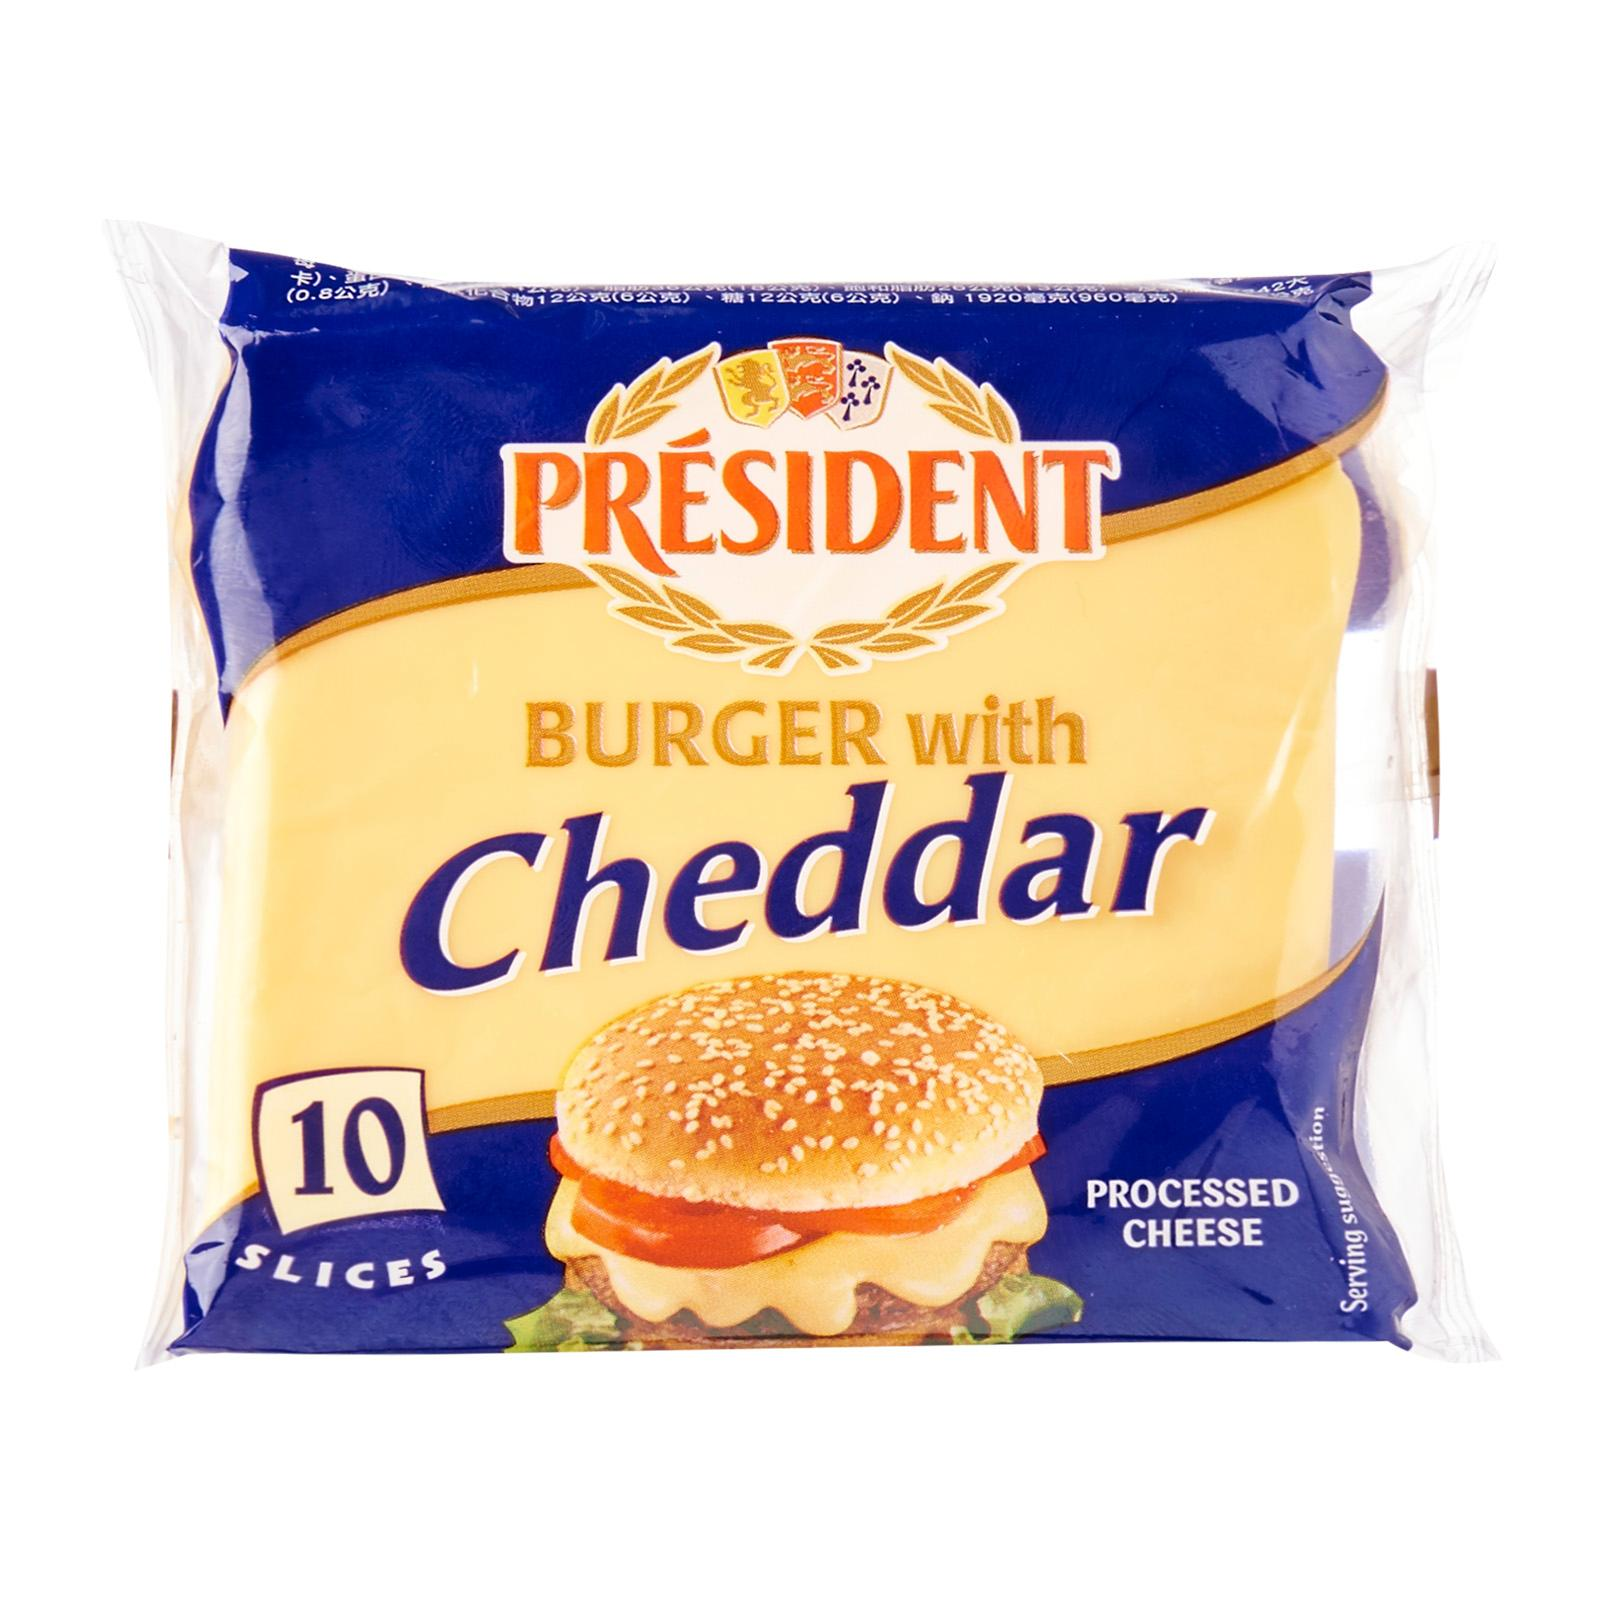 President Burger Cheddar Slices Cheese Slices 200g - from RedMart